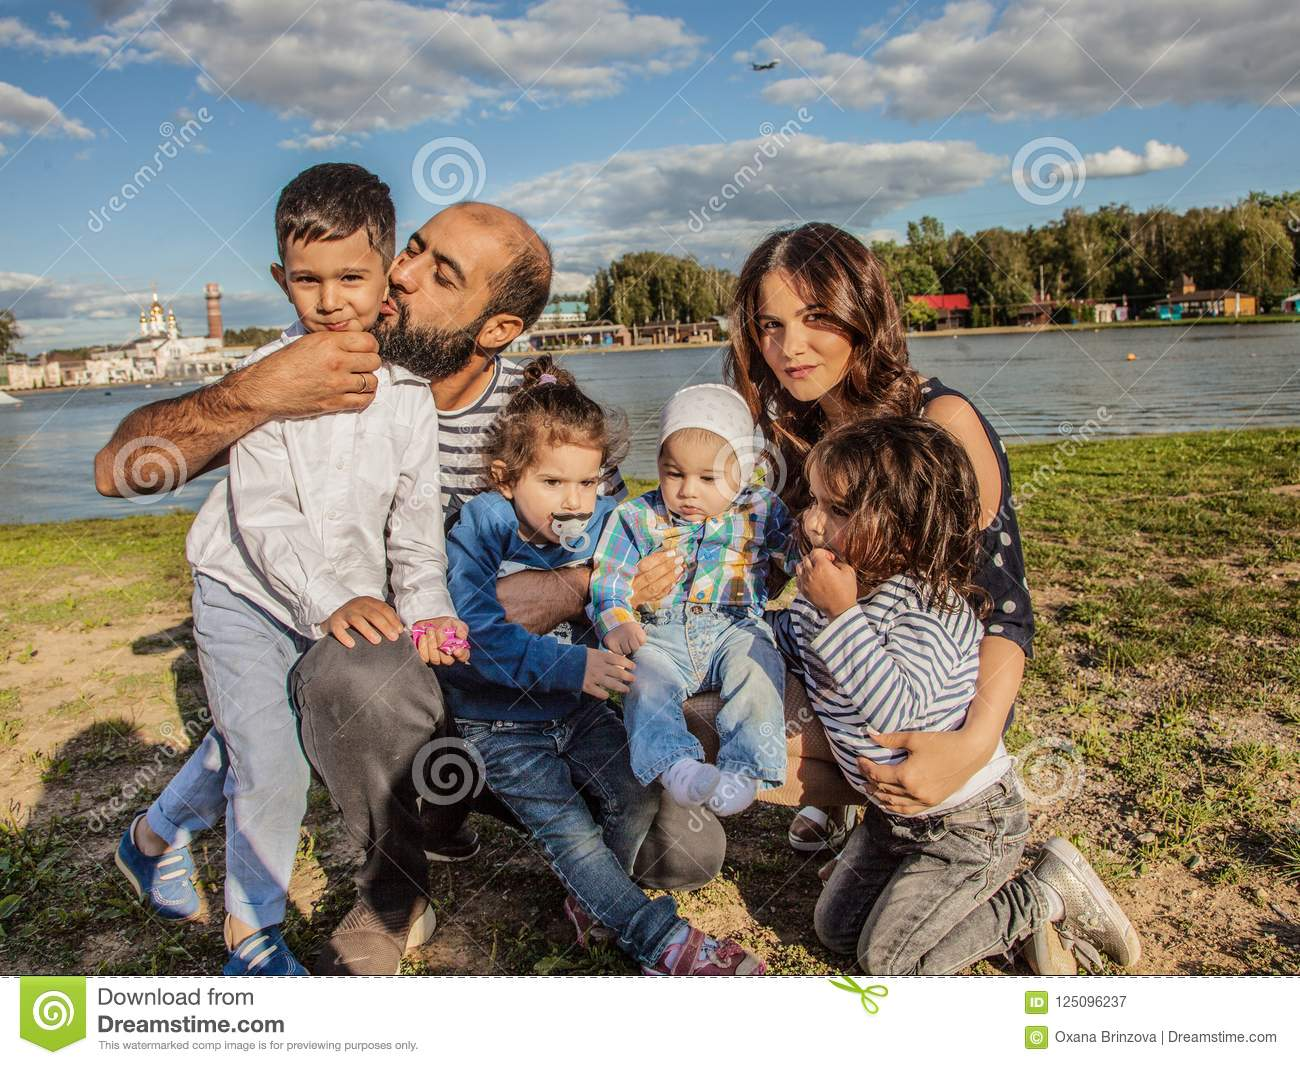 Happy family in nature on the background of a beautiful lake. Mom dad two daughters and two sons.